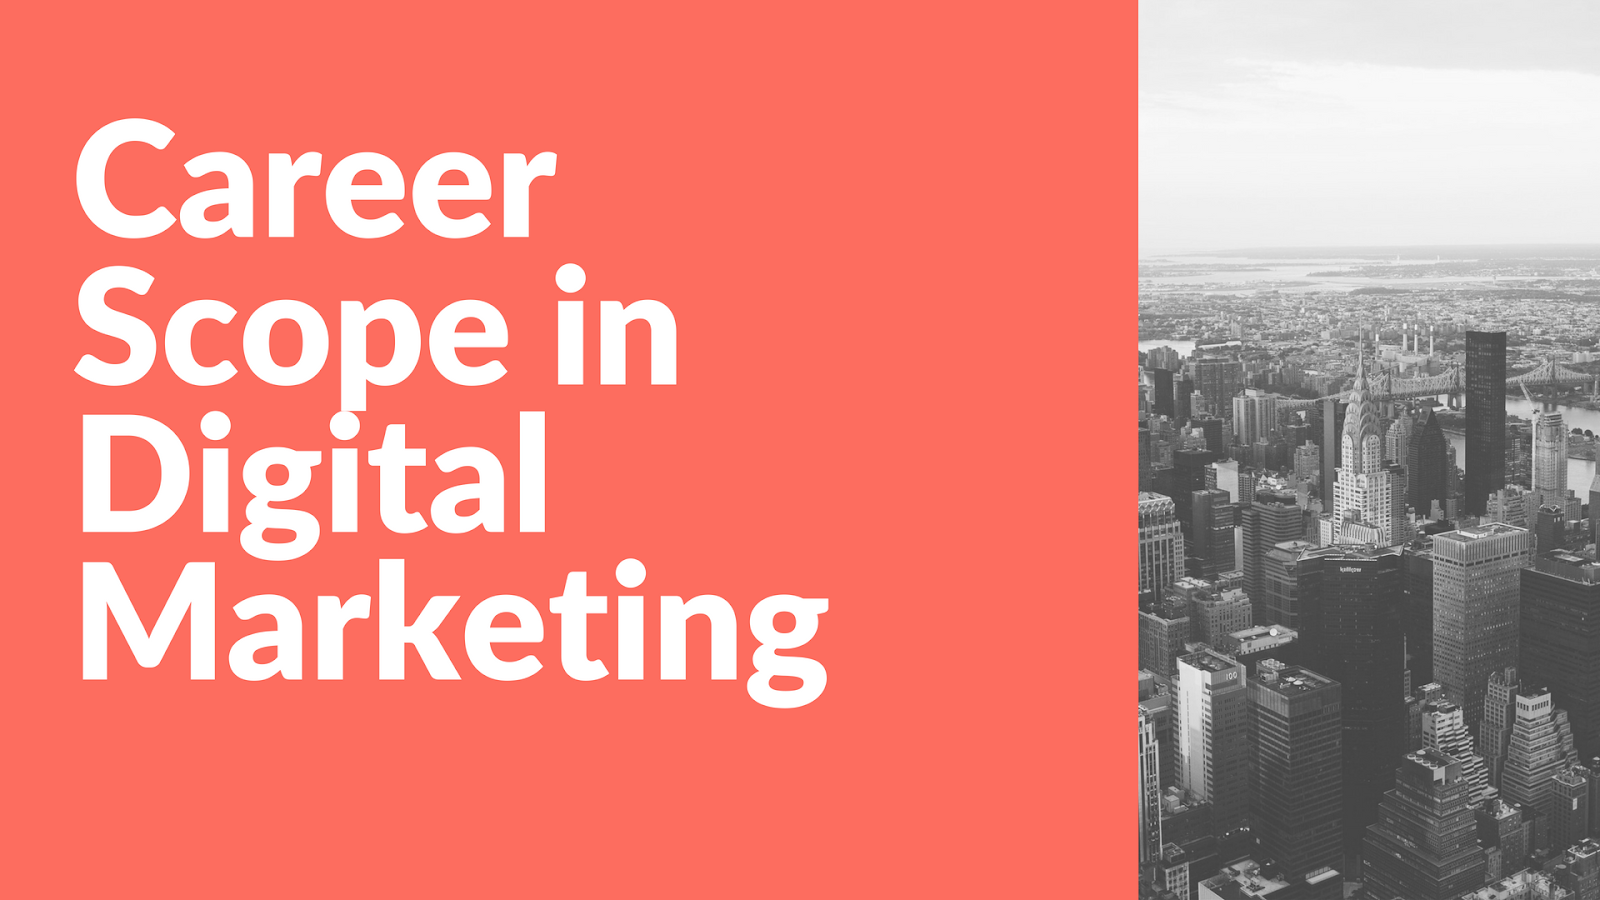 Career Scope in Digital Marketing